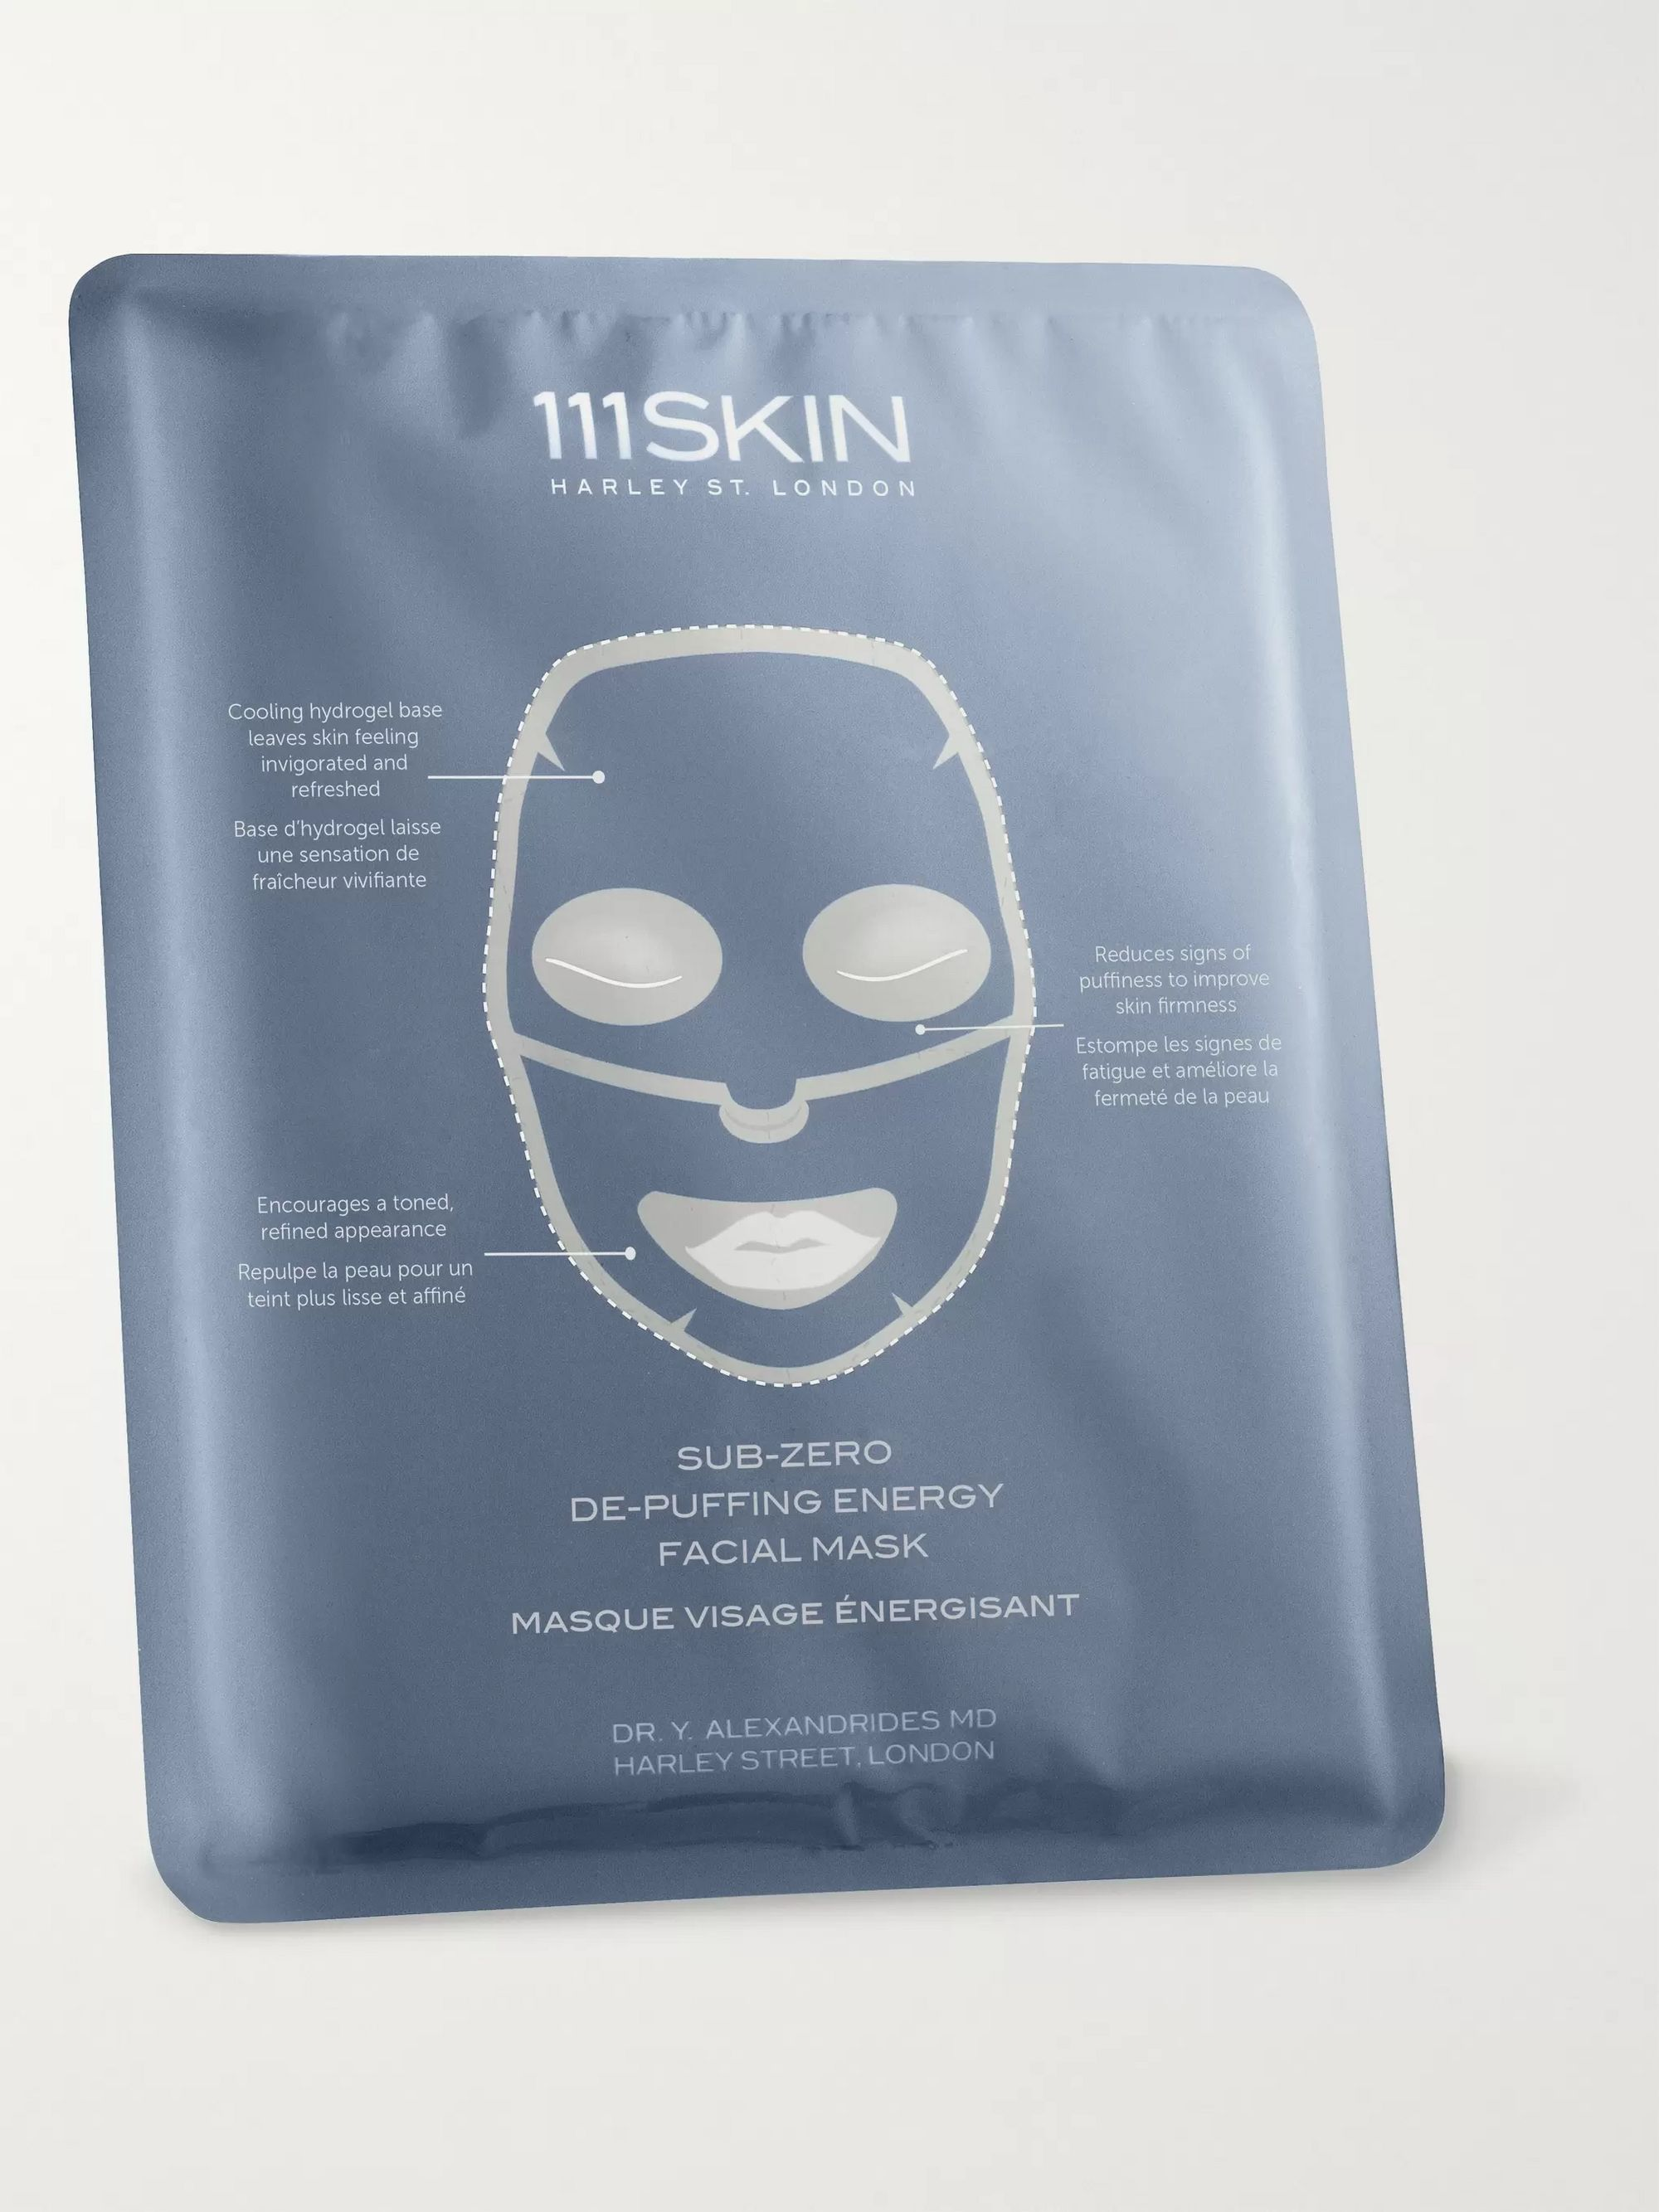 111SKIN Sub-Zero De-Puffing Energy Facial Mask, 23ml